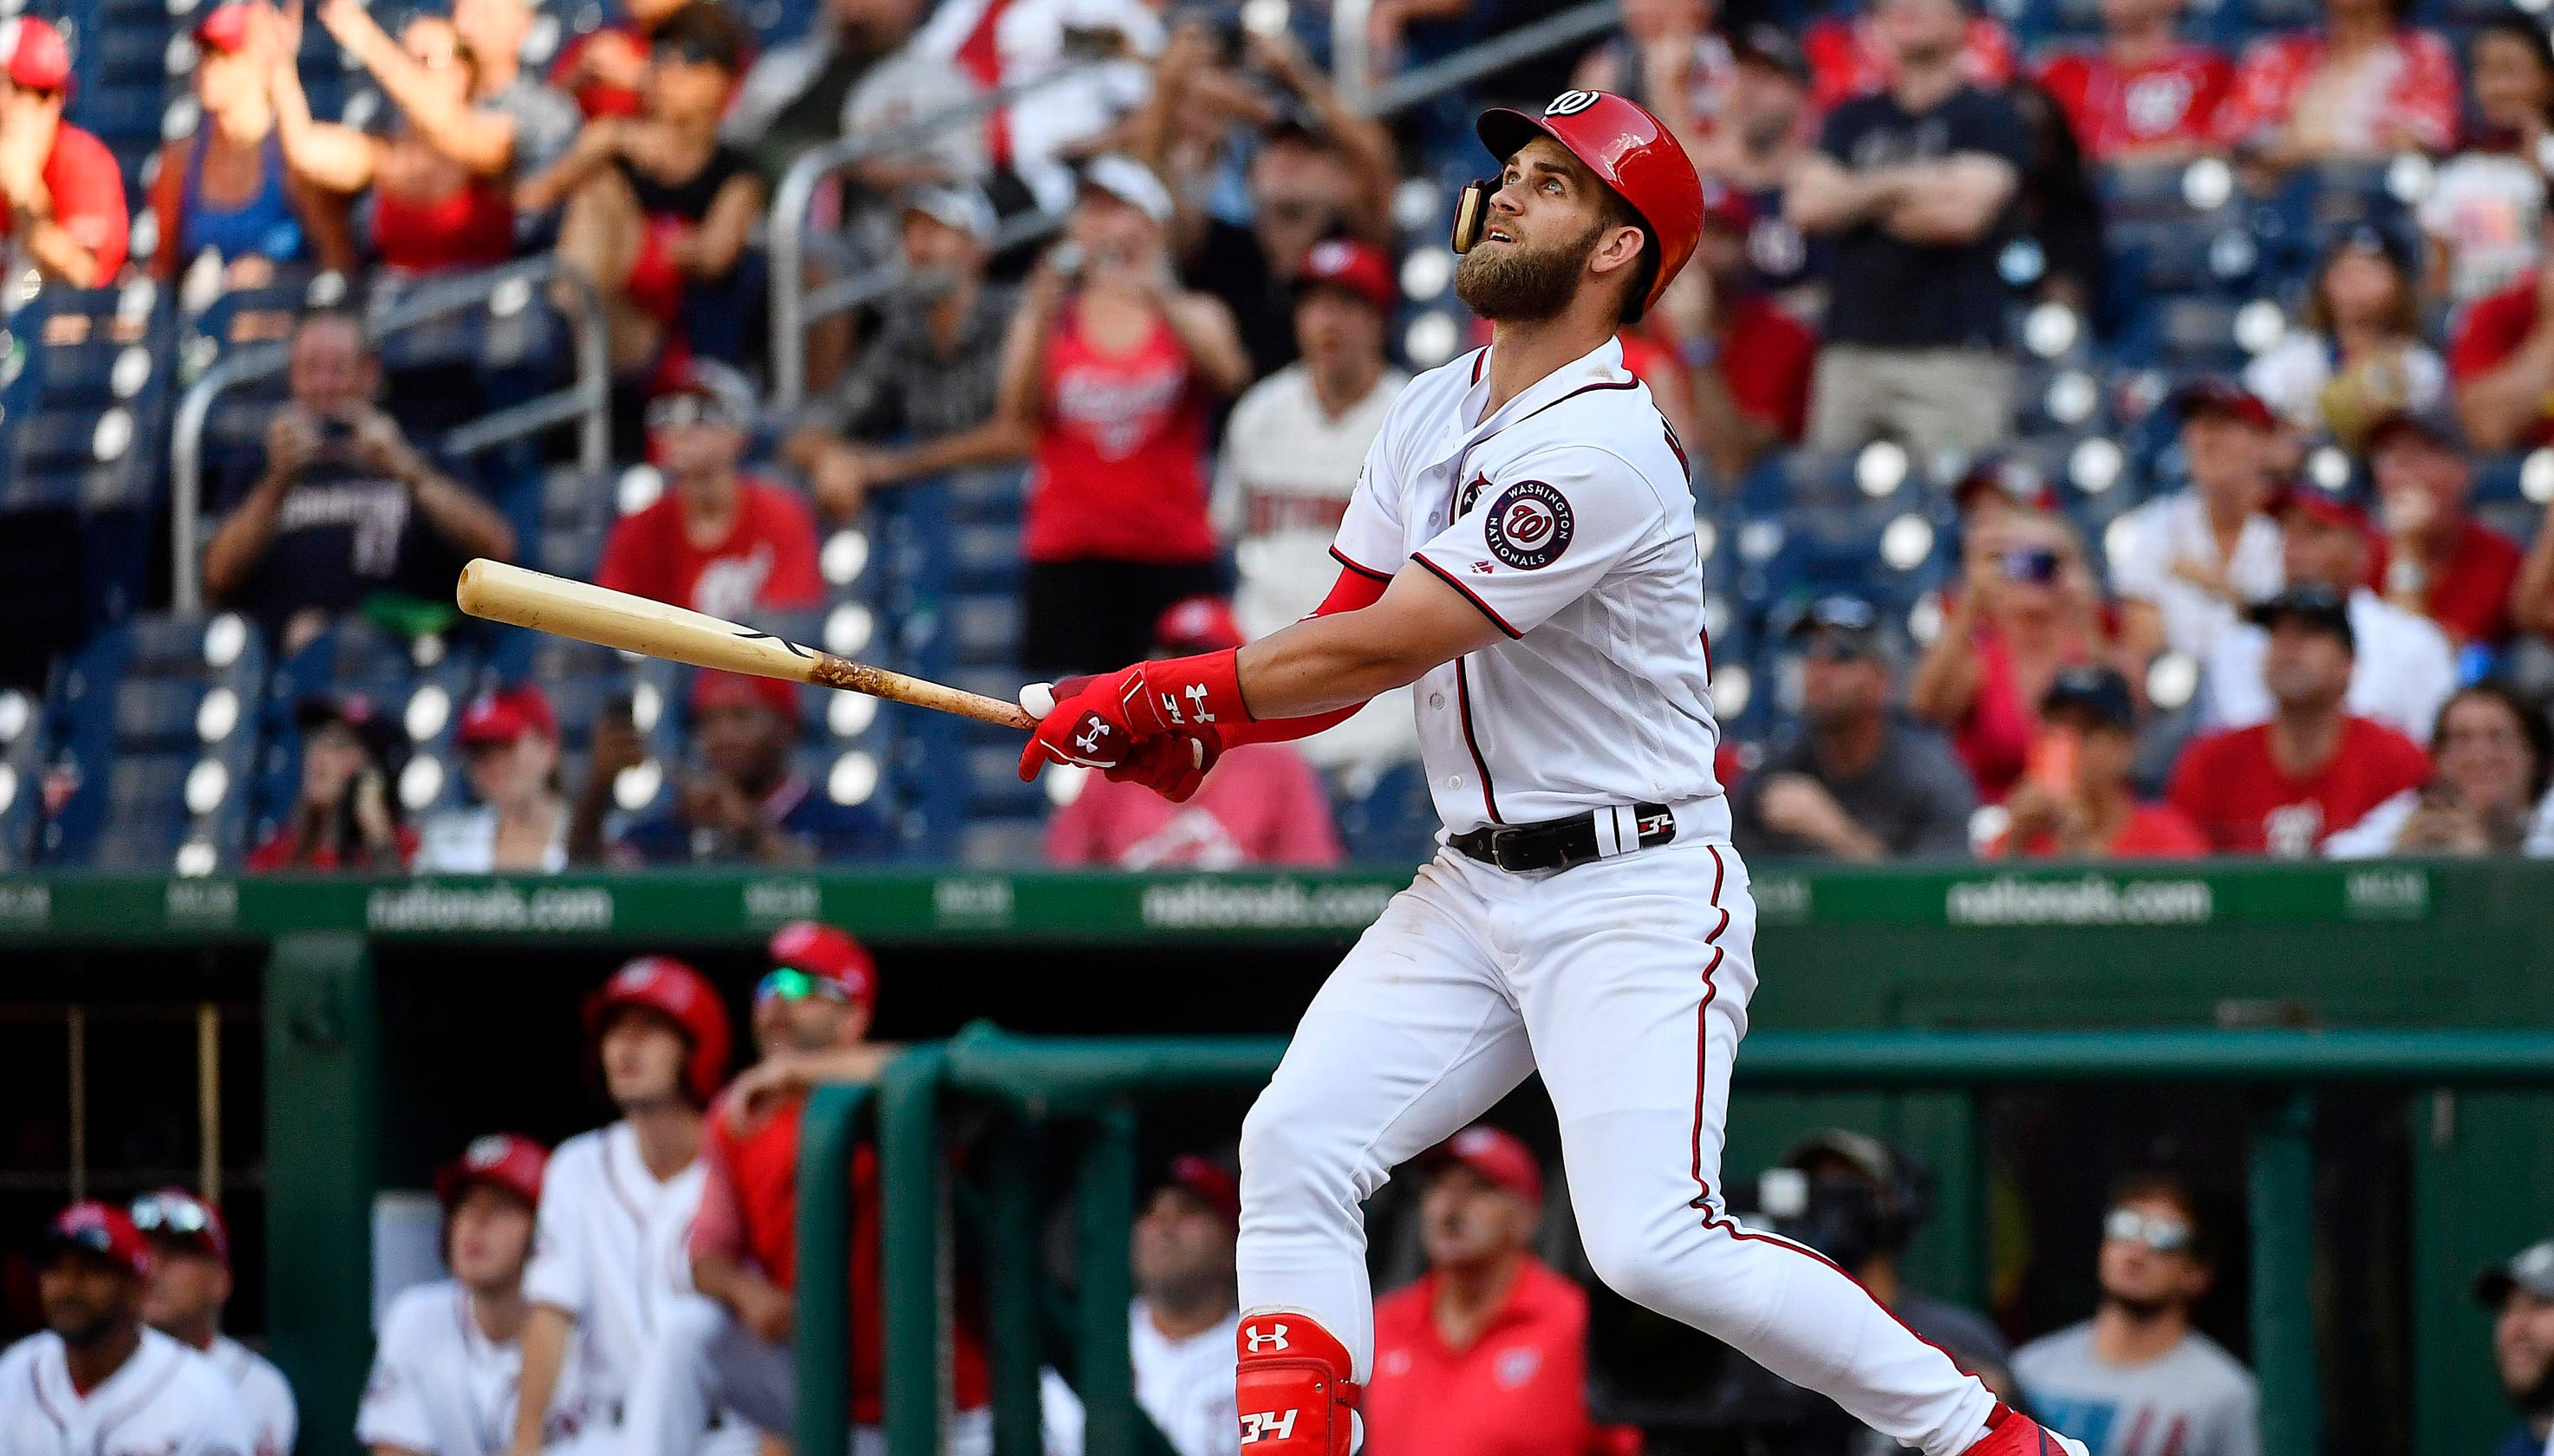 Bryce Harper: How the Phillies' lineup could look with superstar